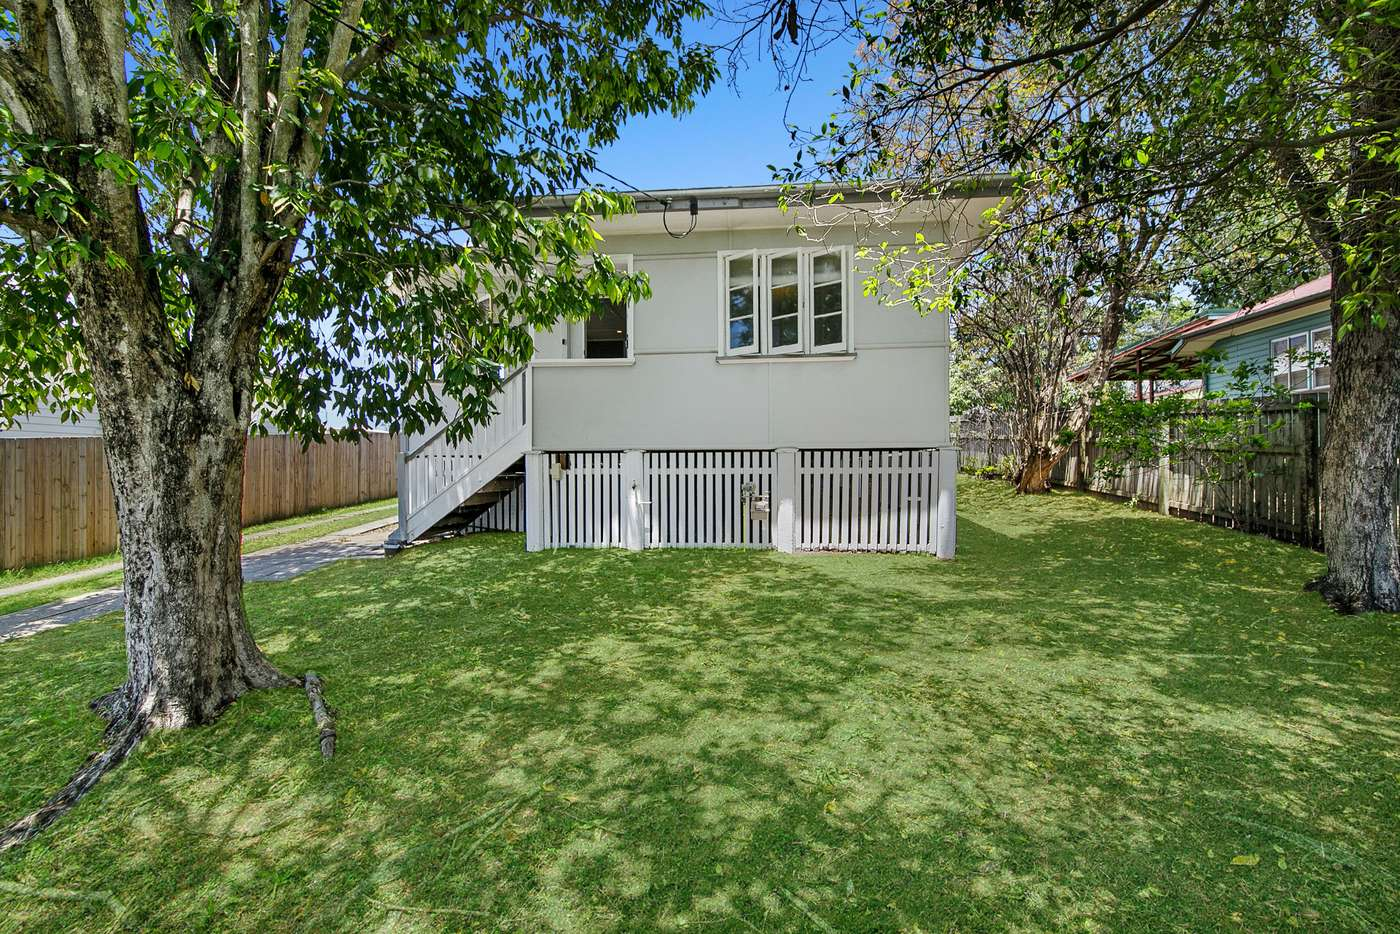 Main view of Homely house listing, 33 Mar Street, Holland Park QLD 4121